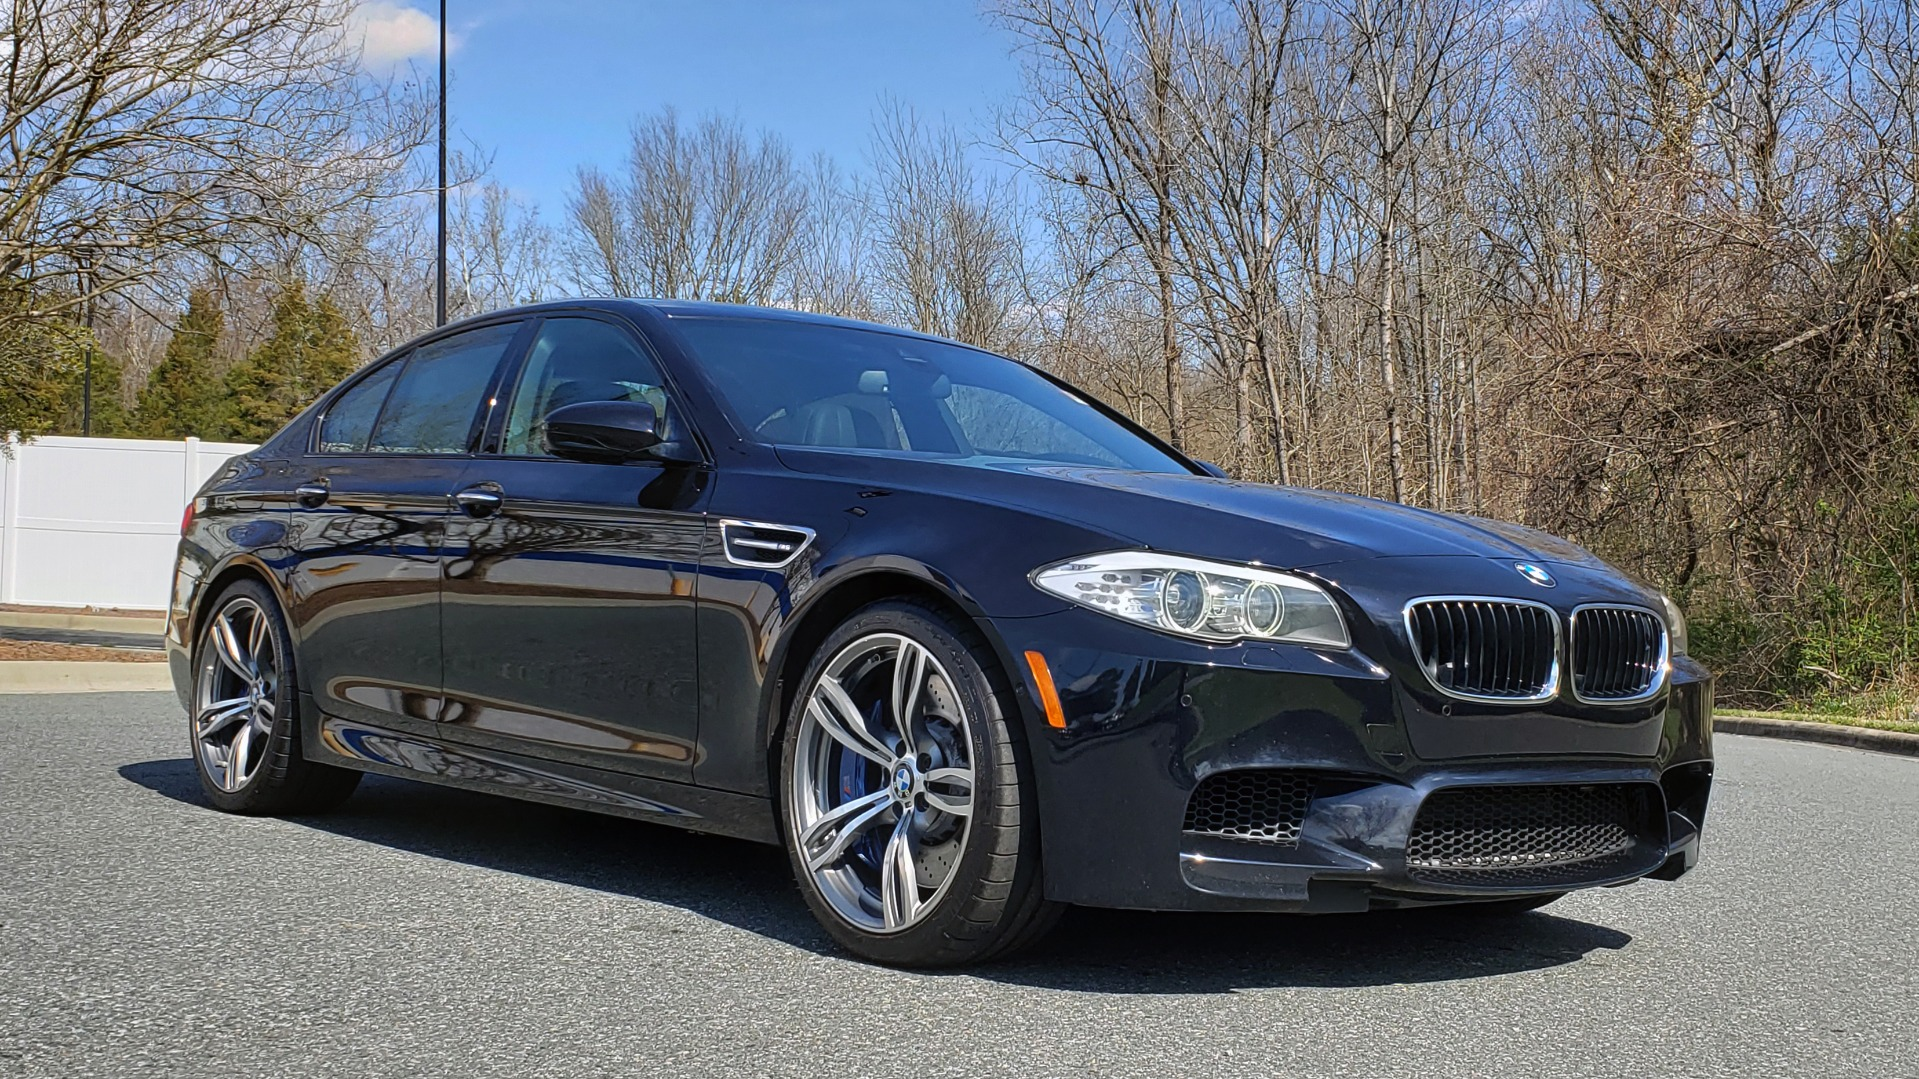 Used 2013 BMW M5 EXECUTIVE PKG / DRVR ASST / NAV / SUNROOF / REARVIEW for sale Sold at Formula Imports in Charlotte NC 28227 4